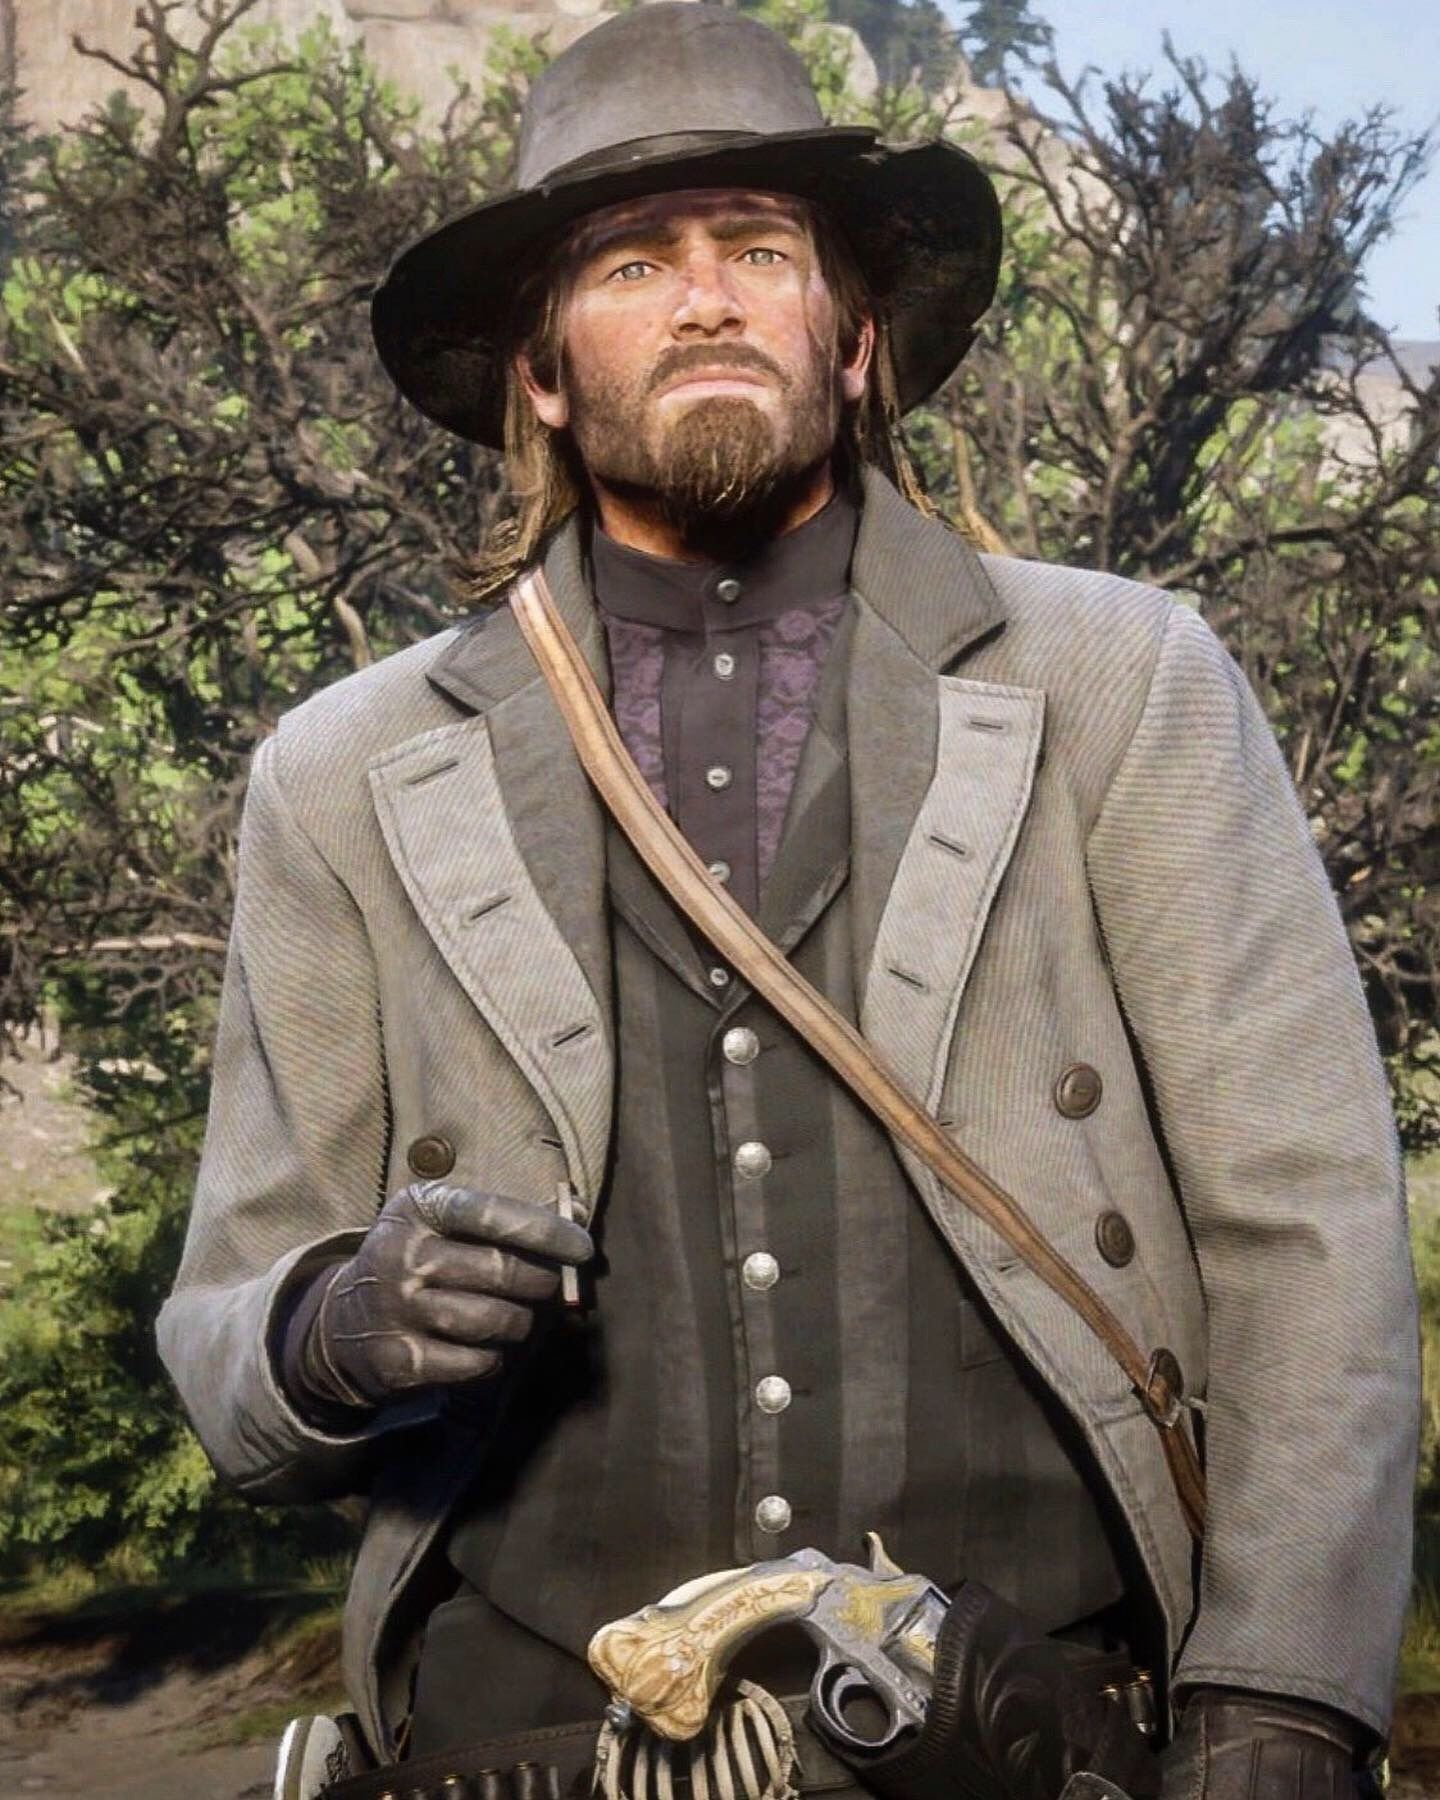 Rdr2222 Outfits Ideas + Rdr2222 Outfits in 2222022220  Red dead redemption ii